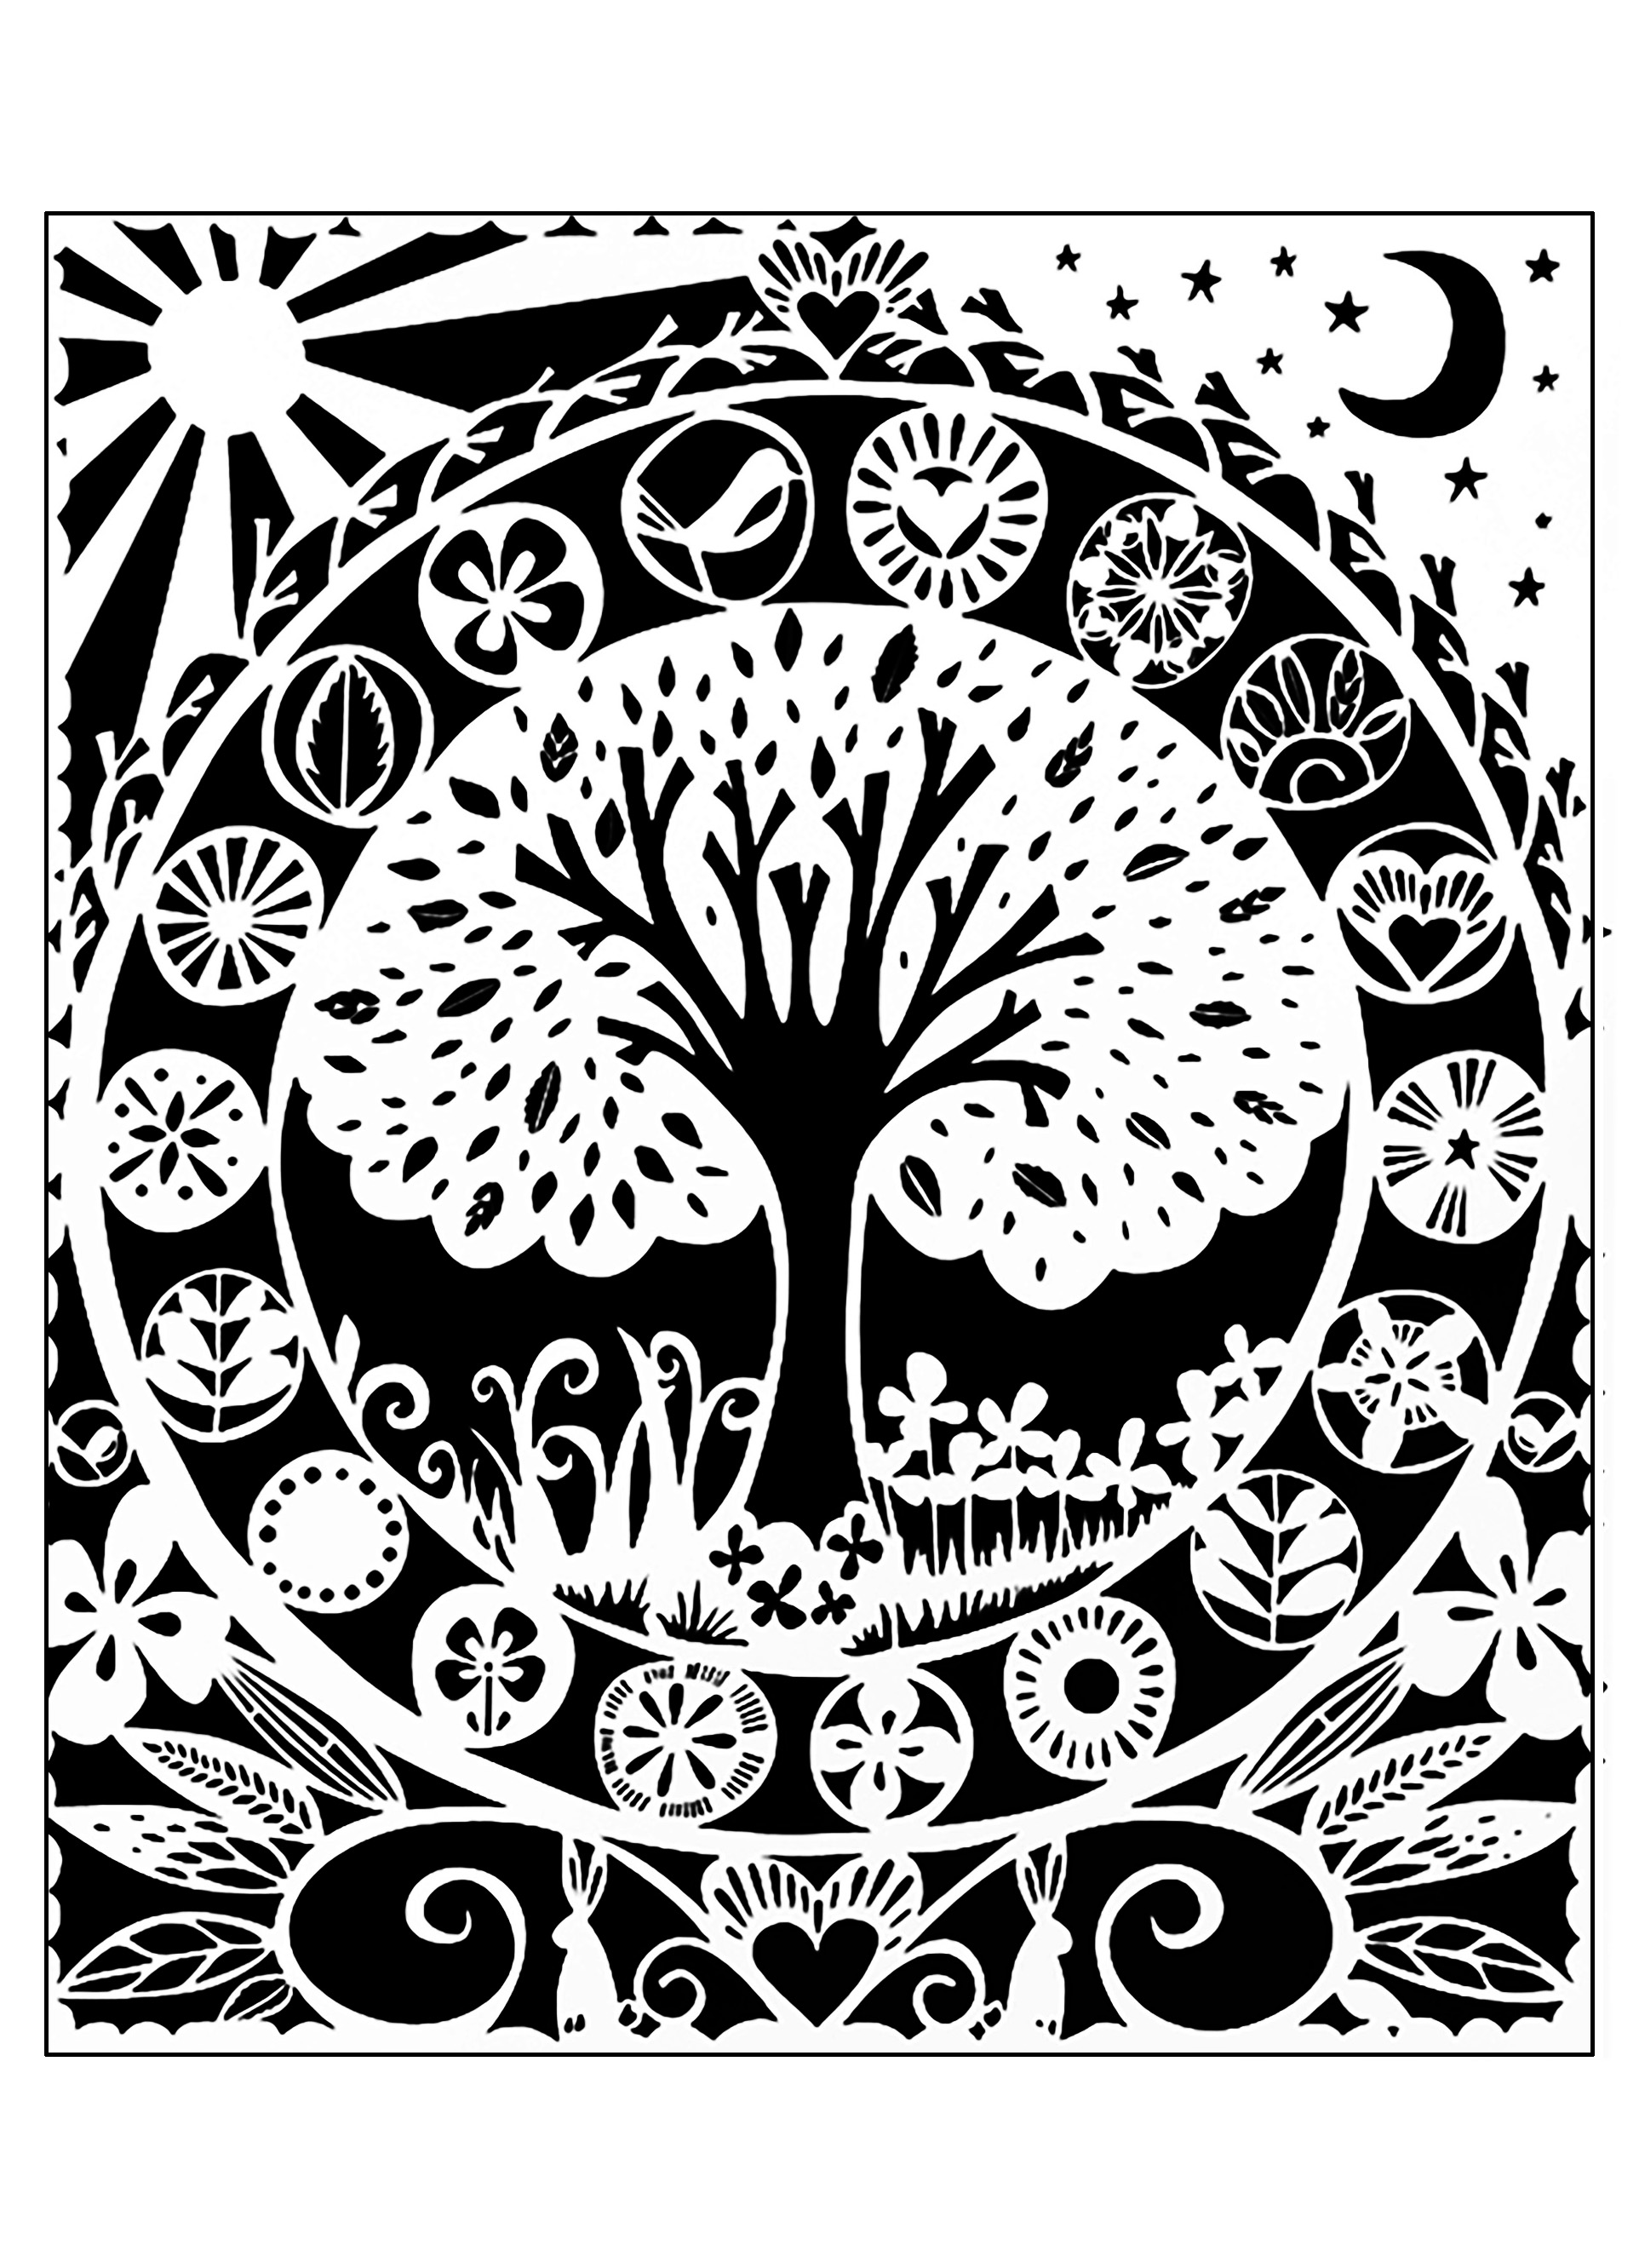 Uncategorized Black And White Coloring Pictures tree white black 2 flowers and vegetation coloring pages for beautiful to color version from the gallery vegetation